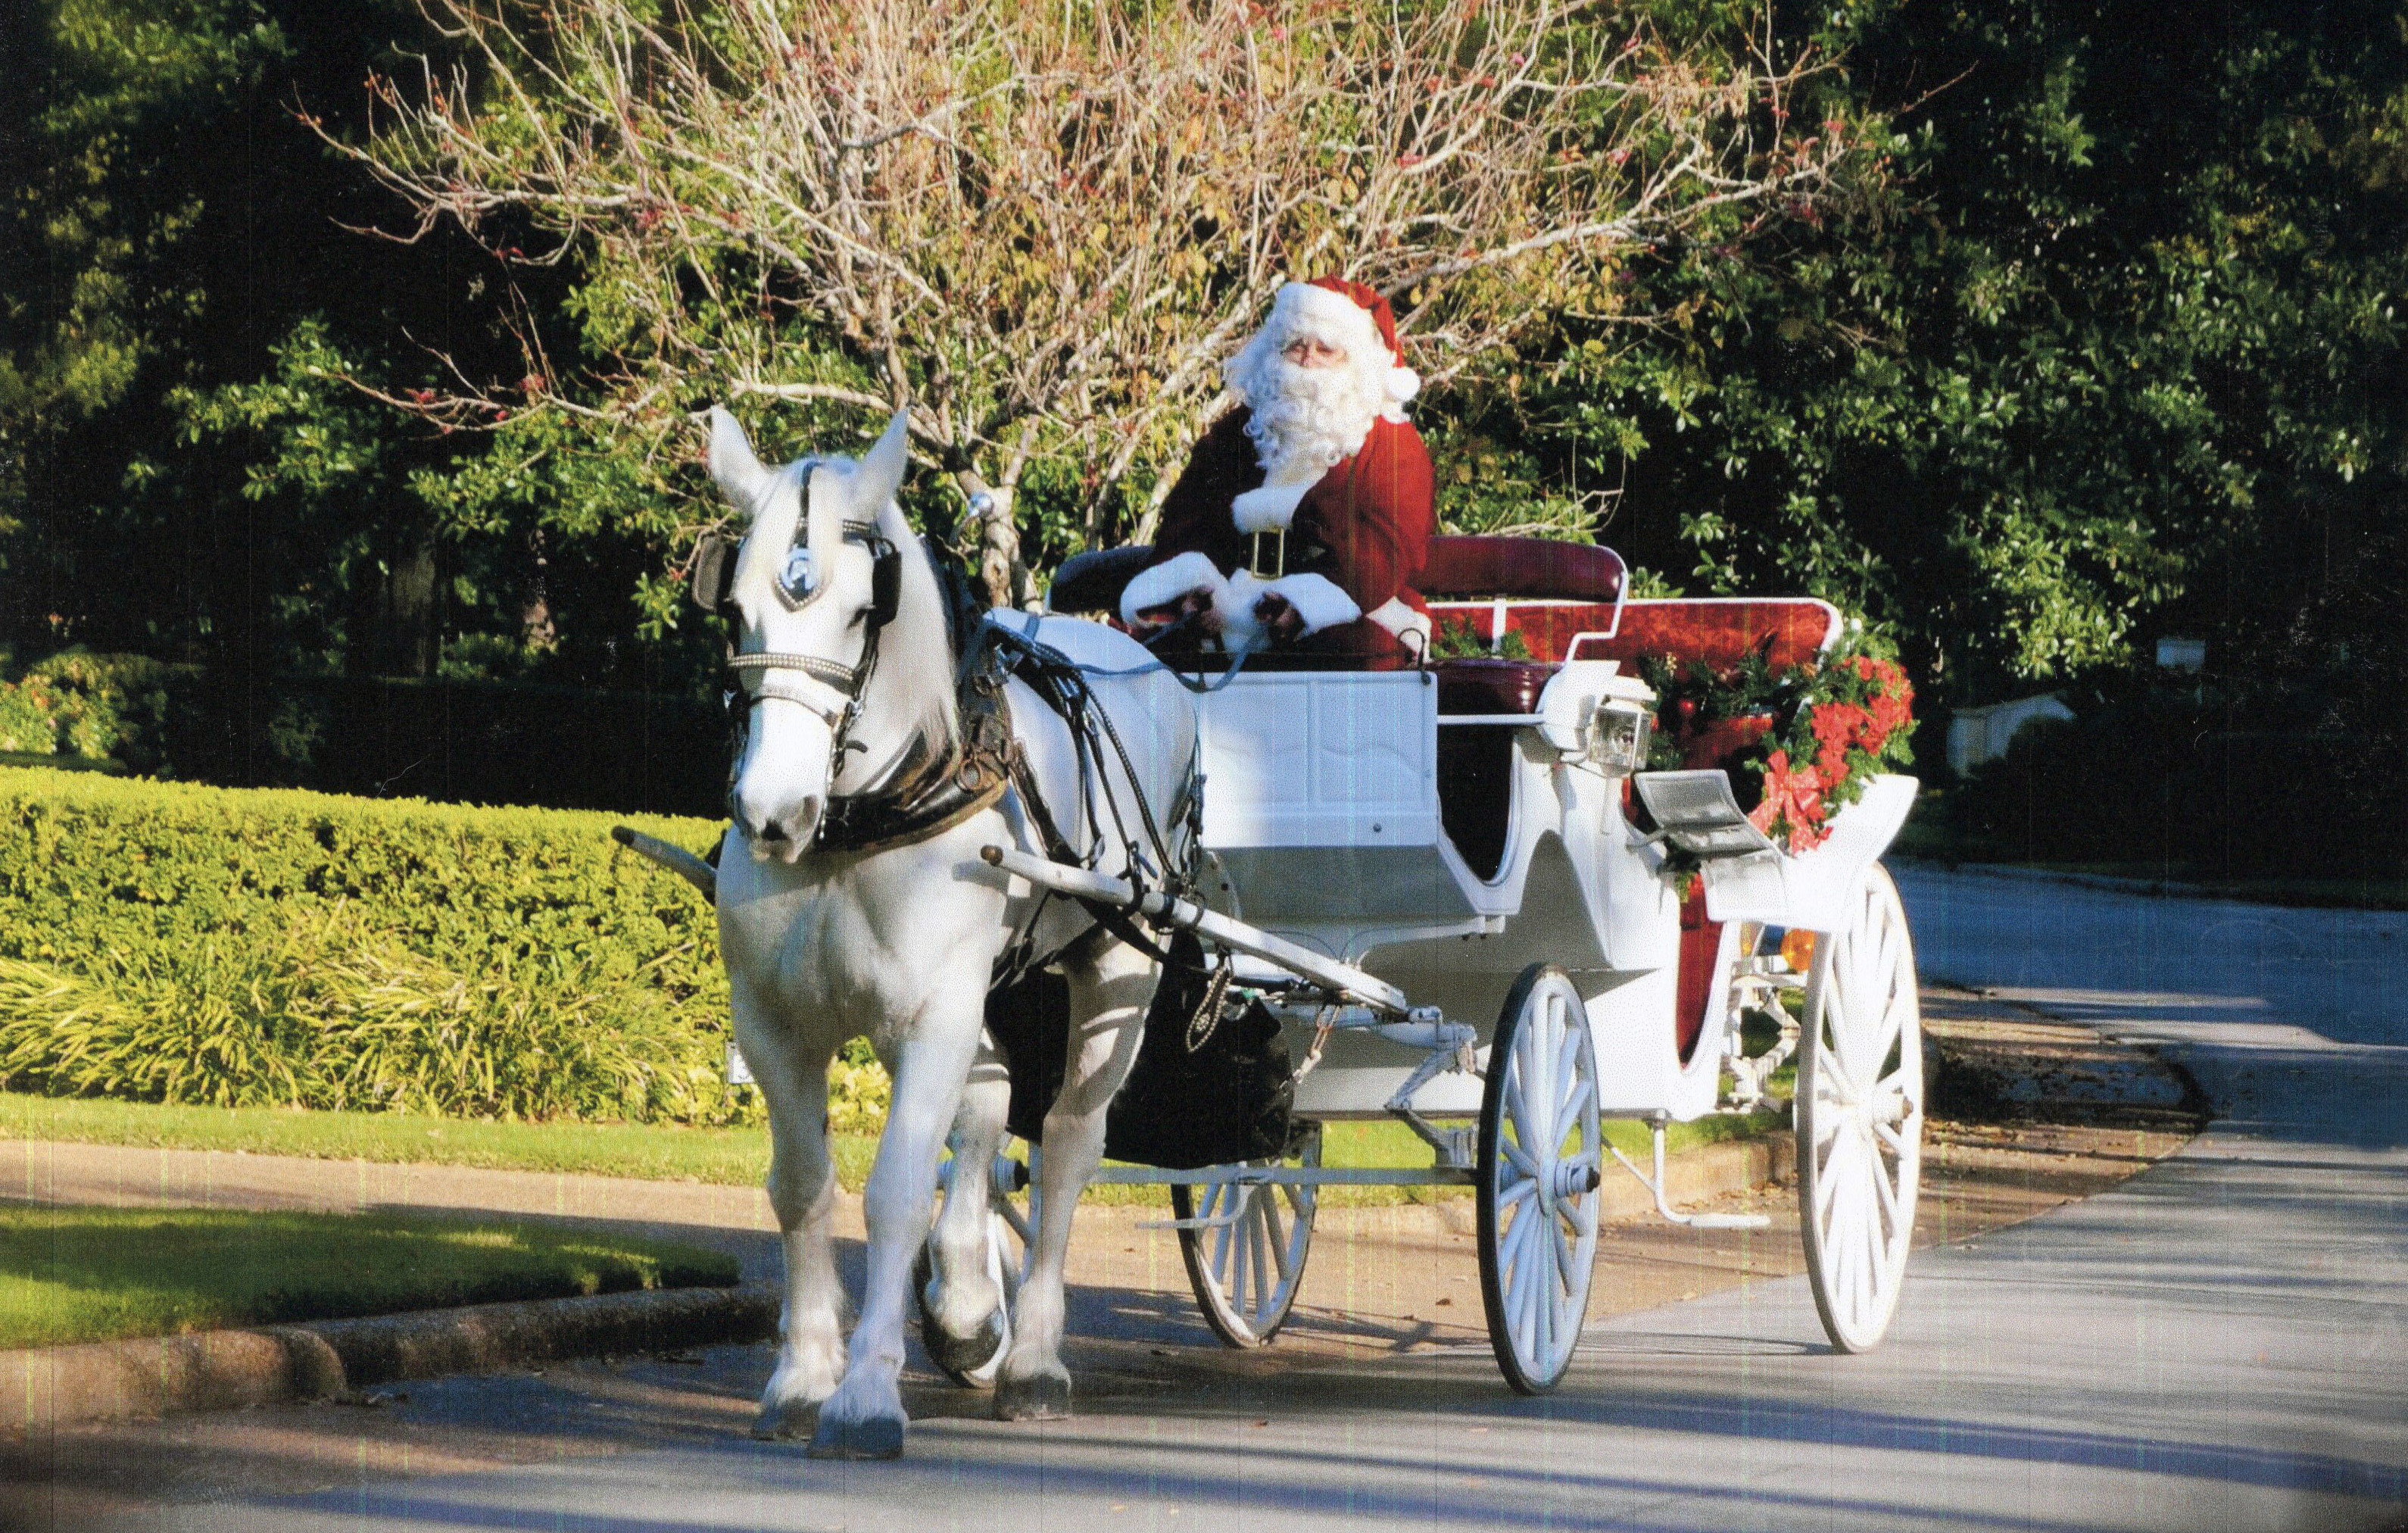 Rivers Oaks Butler Christmas Lights Carriage Rides Home Remodeling Real Estate Services